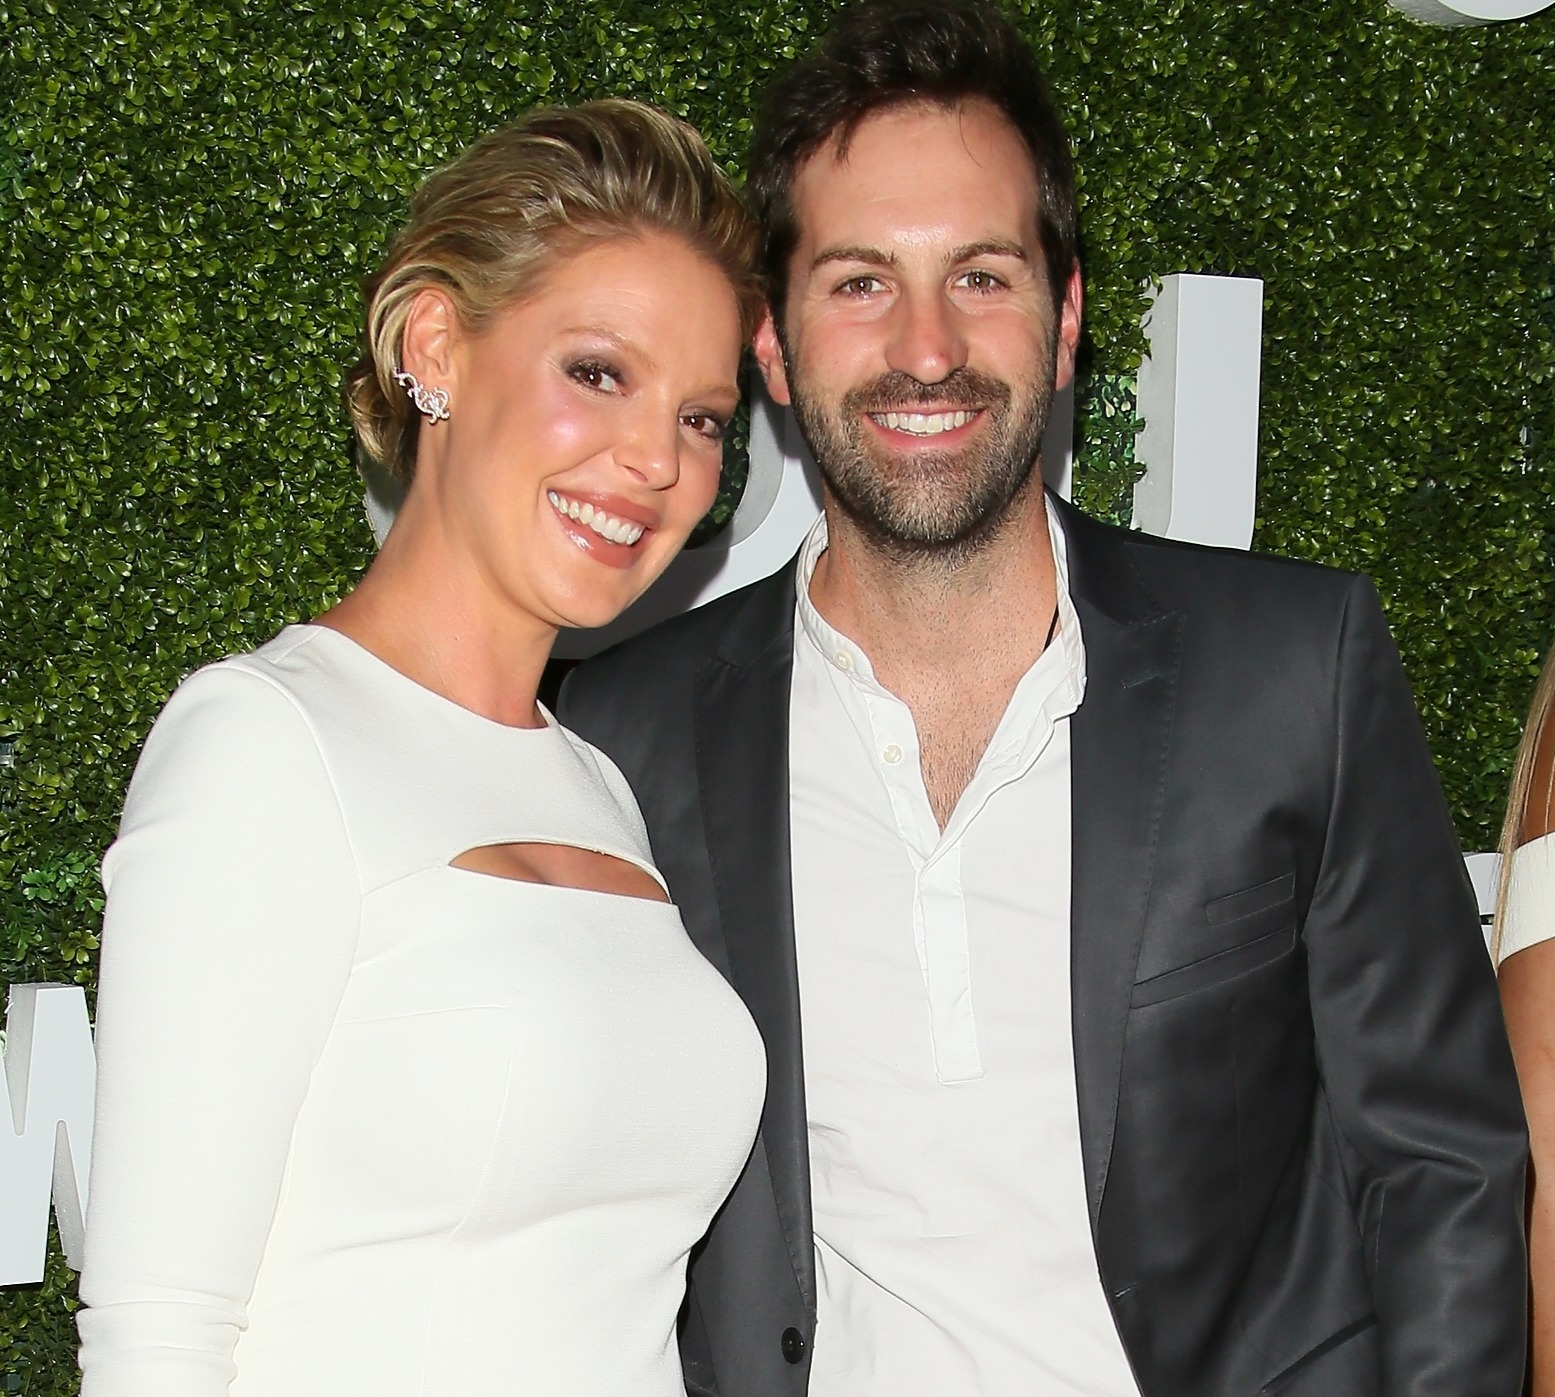 Katherine Heigl and Josh Kelley attending an event in all smiles